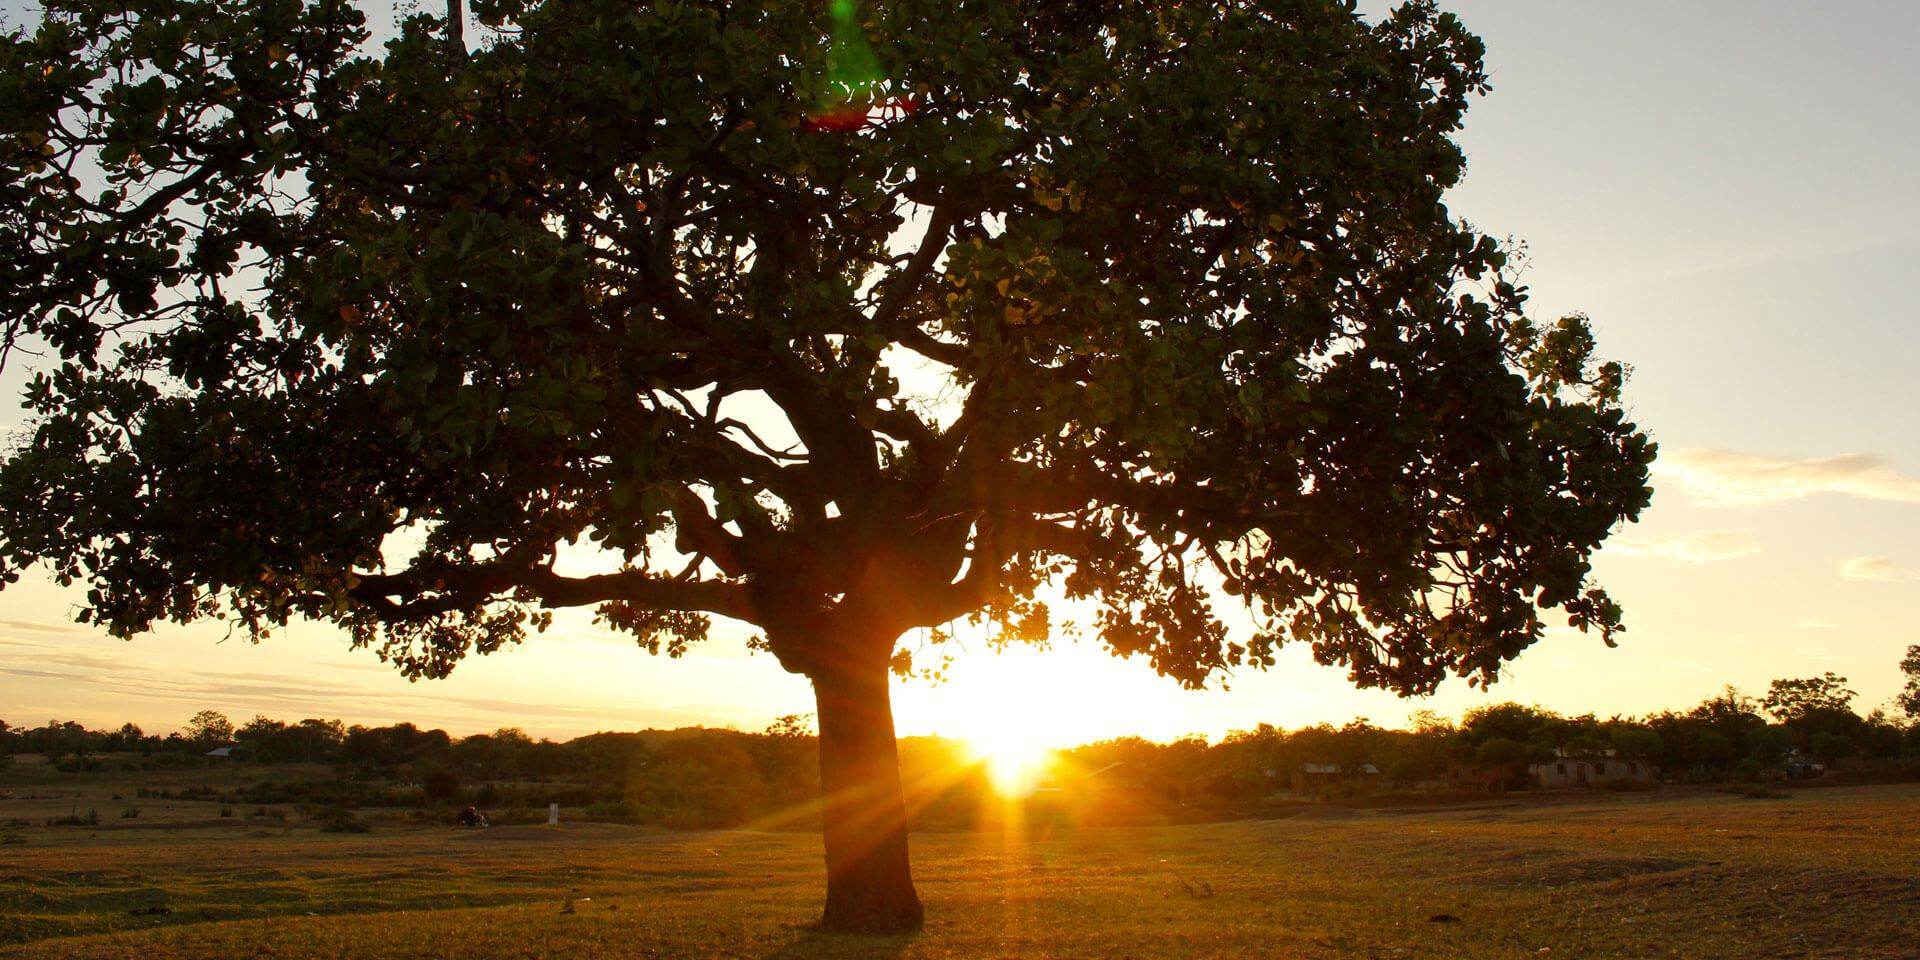 Photo of a tree with the sun setting in the background